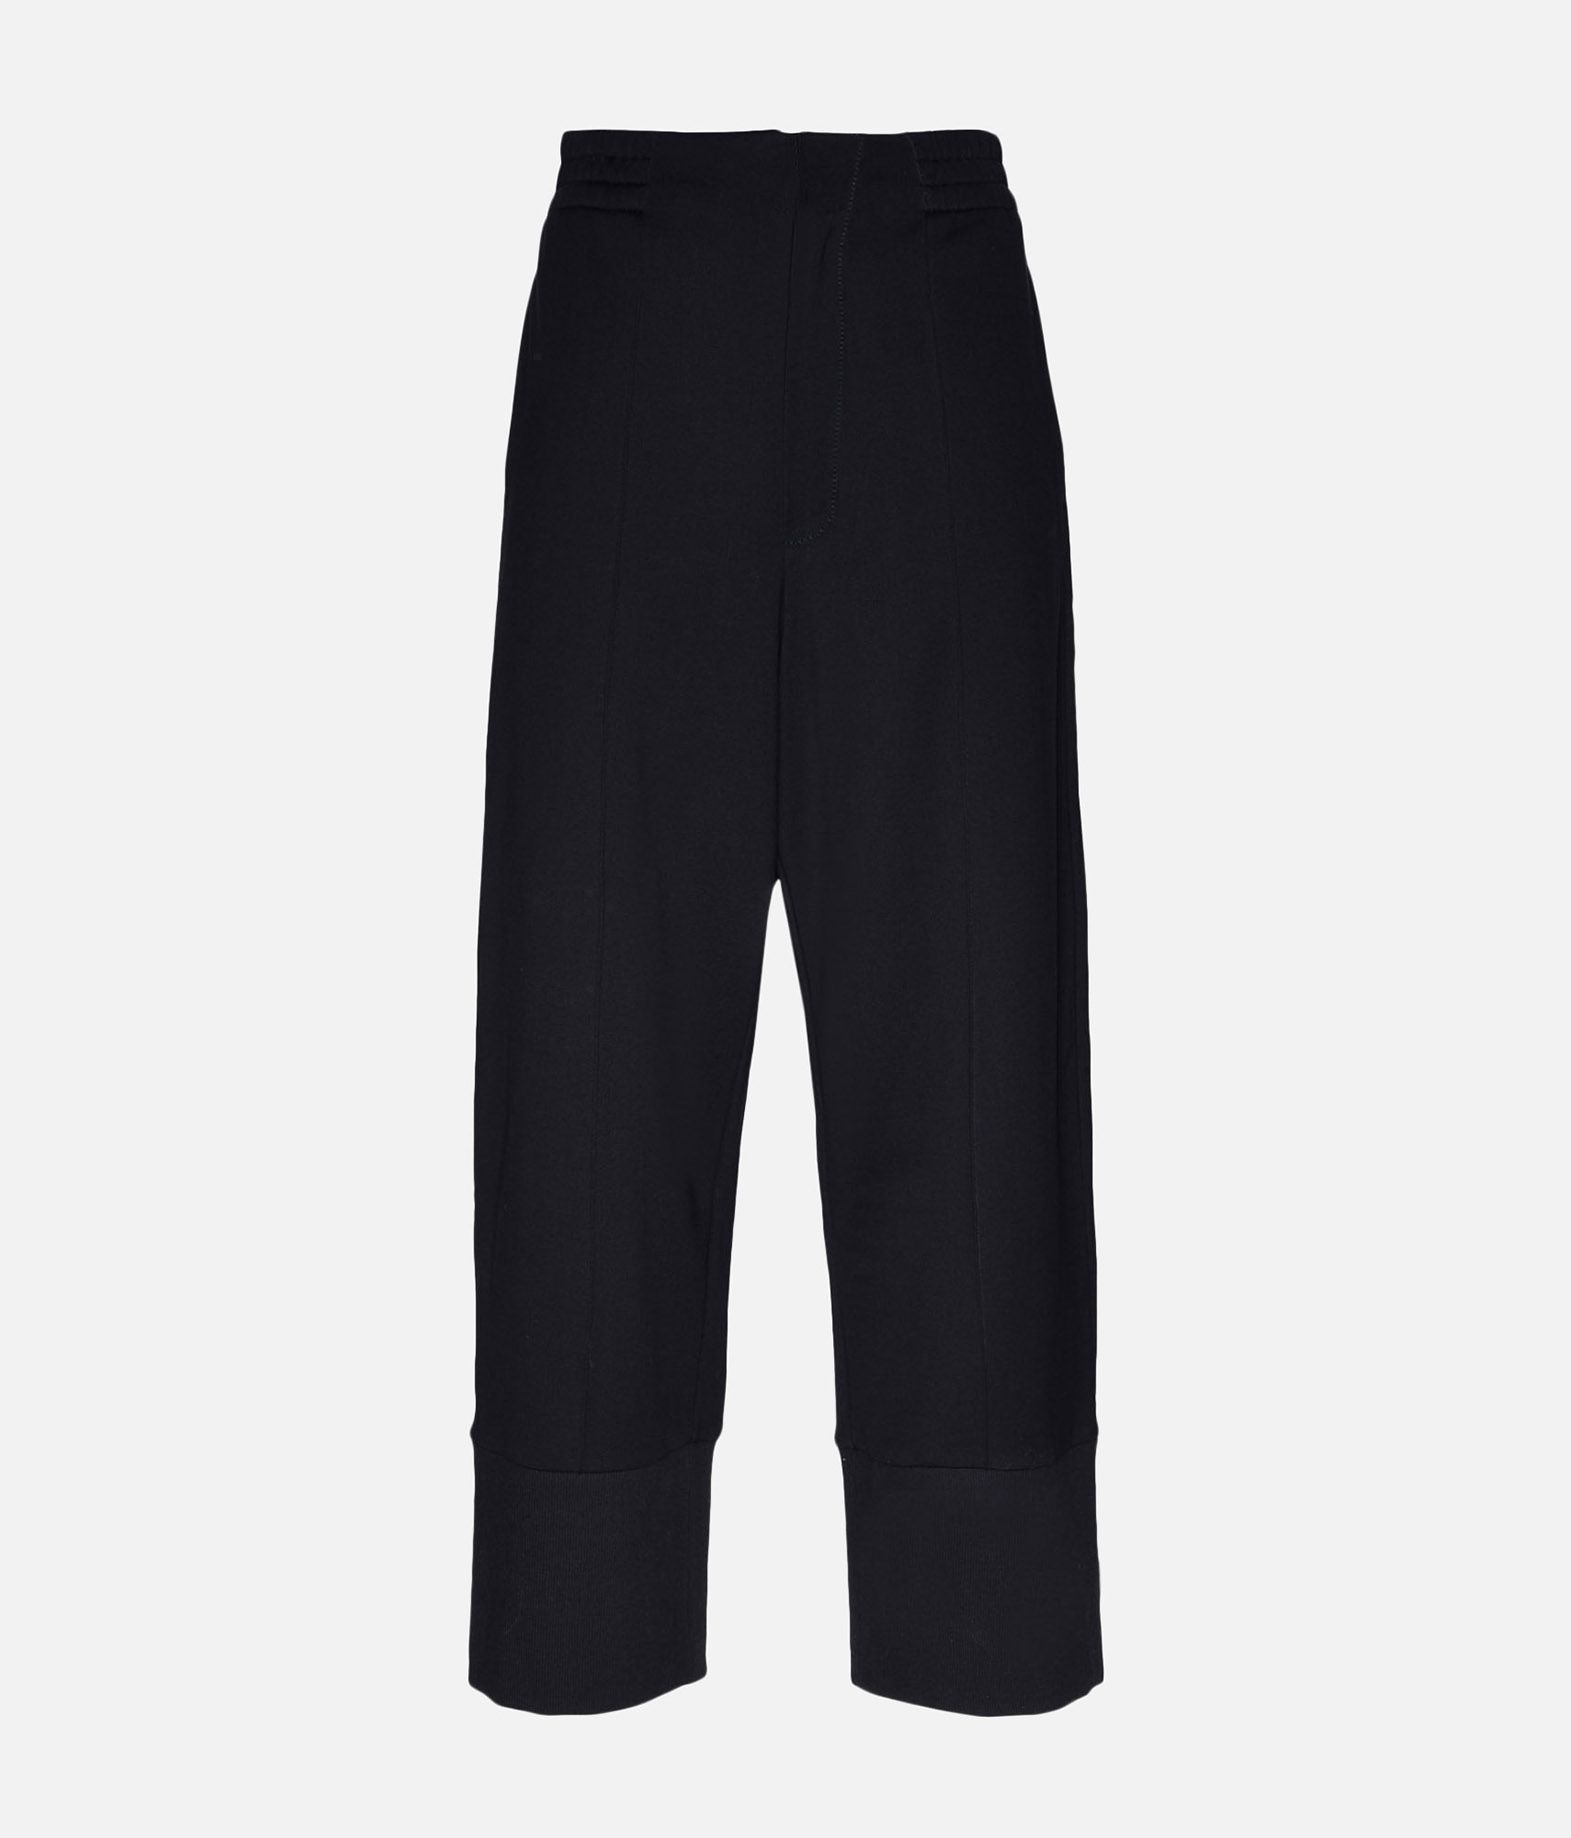 Y-3 Y-3 Sashiko Pants Casual trouser Woman f